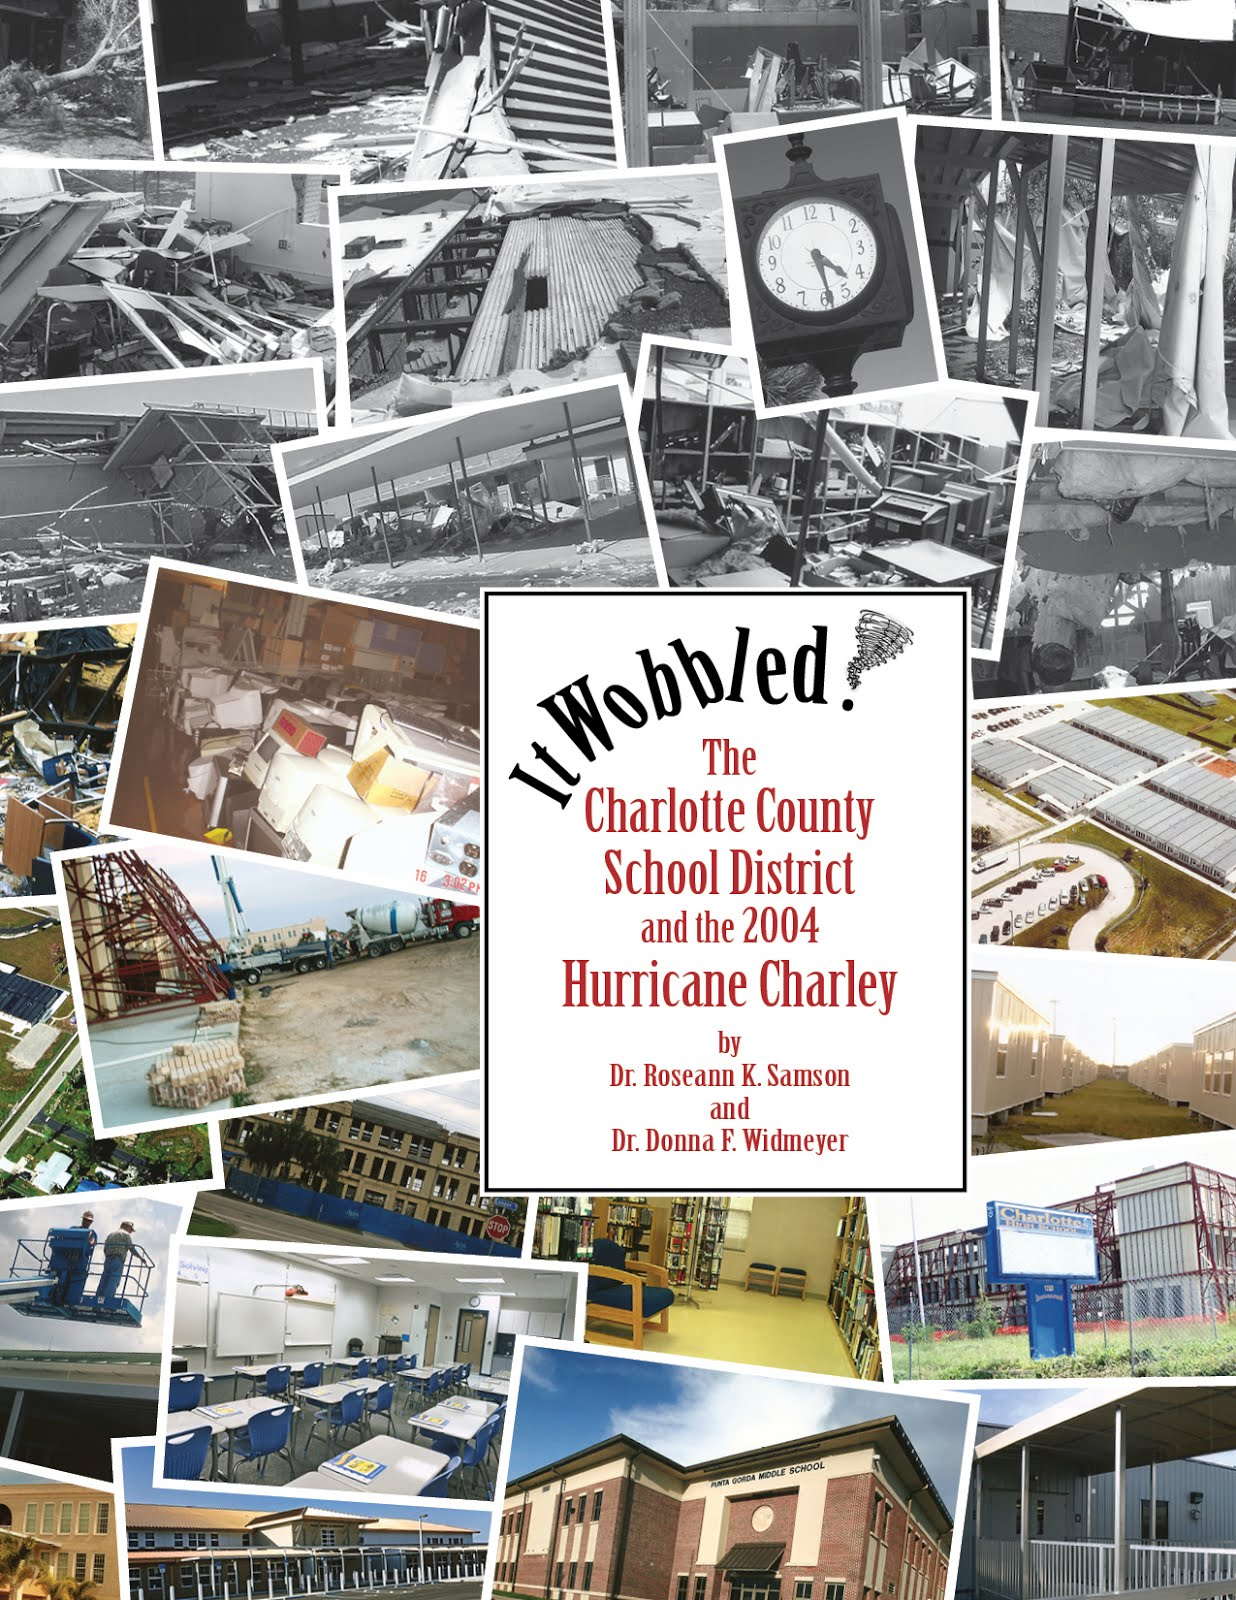 IT WOBBLED! THE CHARLOTTE COUNTY SCHOOL DISTRICT AND THE 2004 HURRICANE CHARLEY